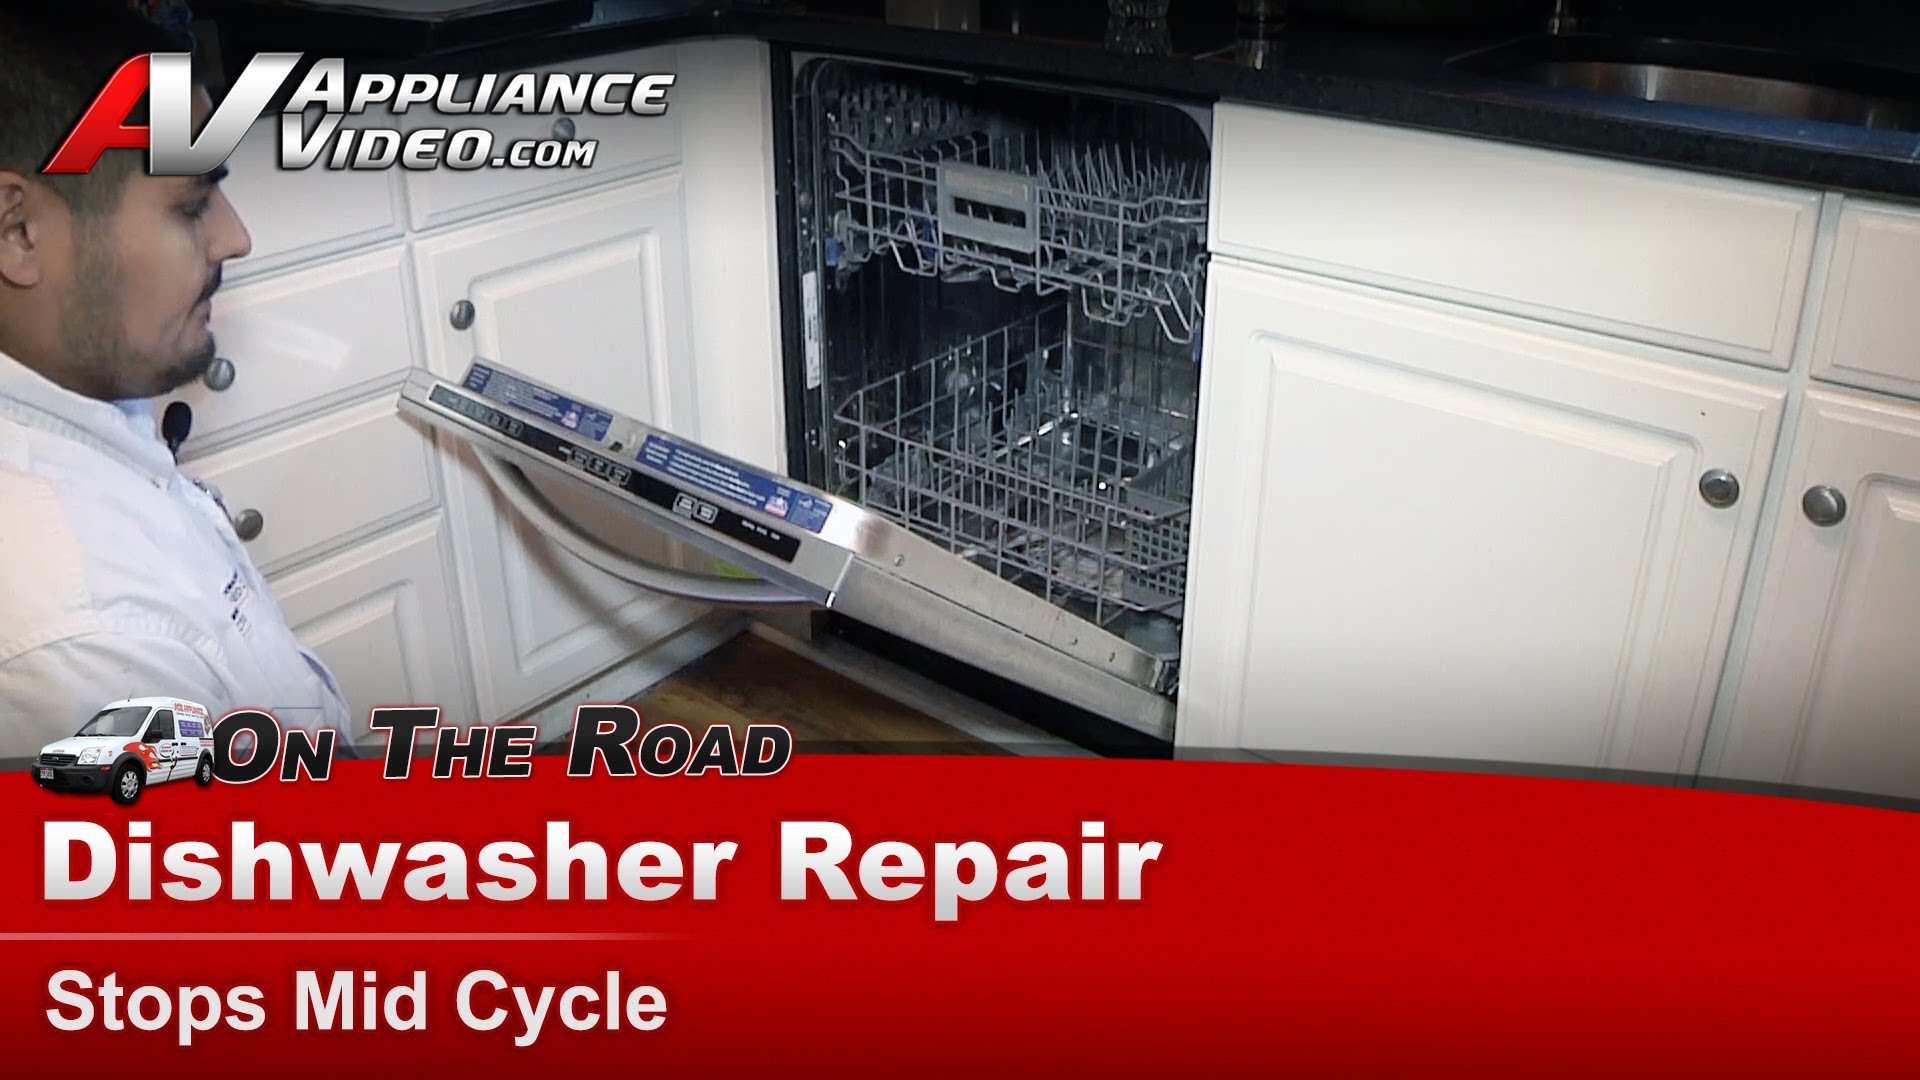 kitchen aid dishwashers outdoor with fireplace kitchenaid kudc10fxss3 dishwasher repair stops mid cycle impeller appliance video